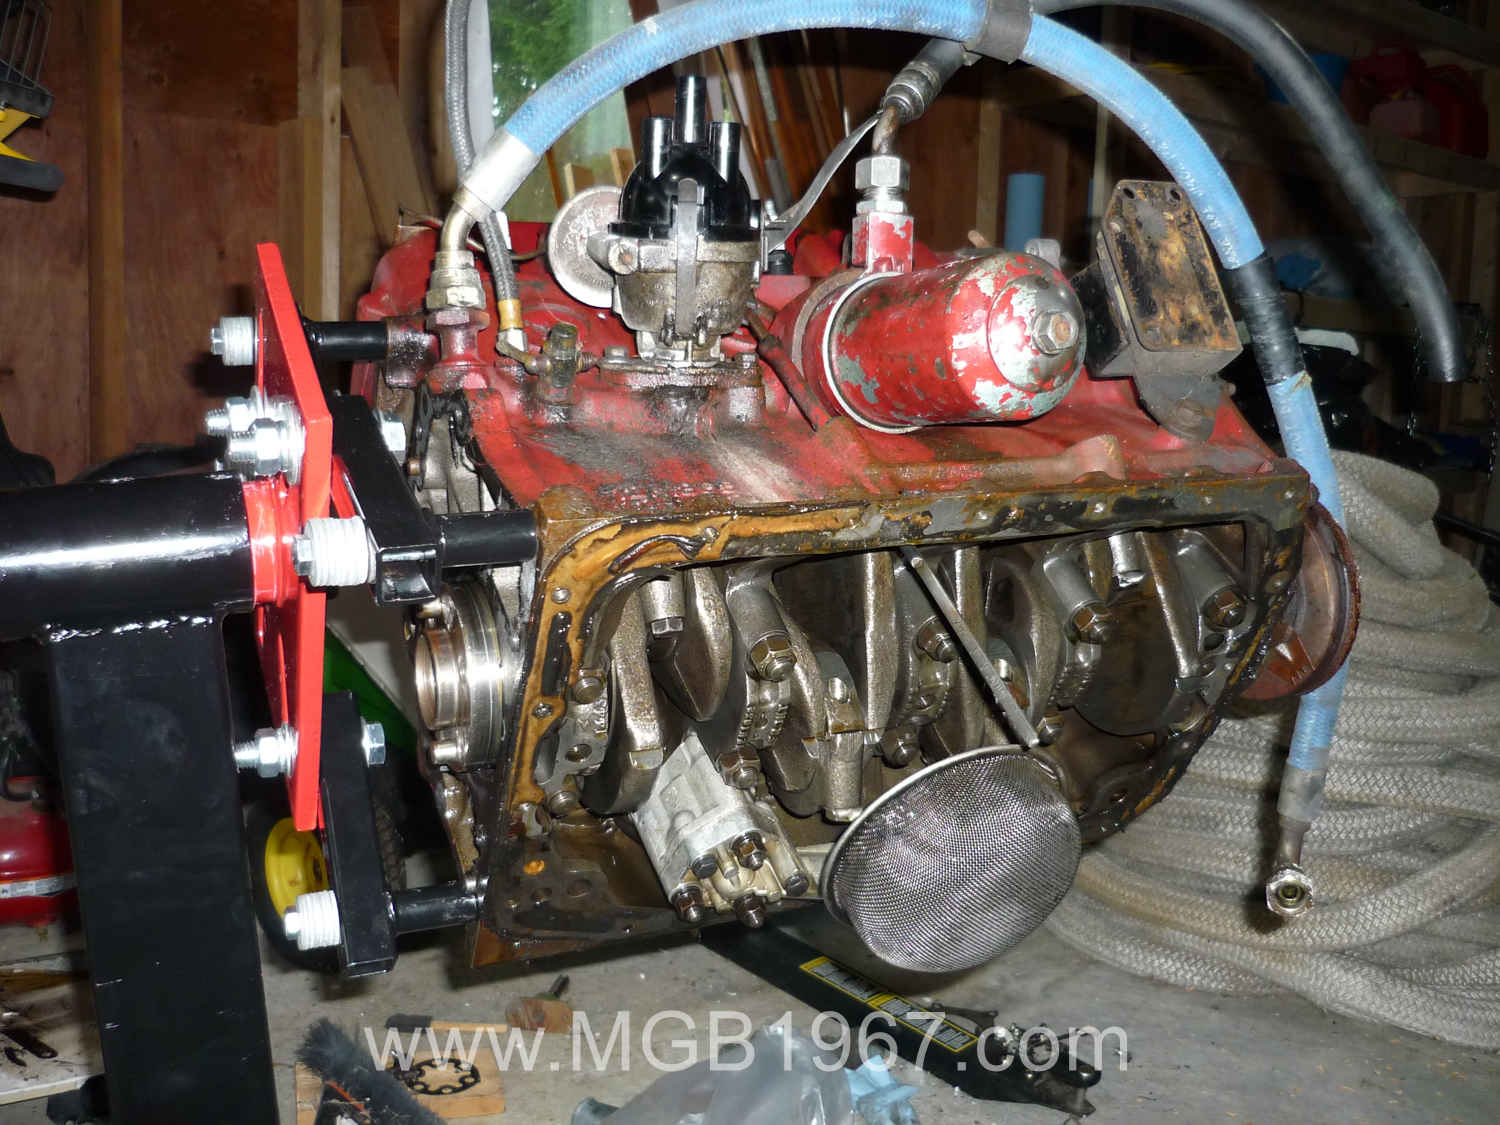 Freshly painted MGB GT engine